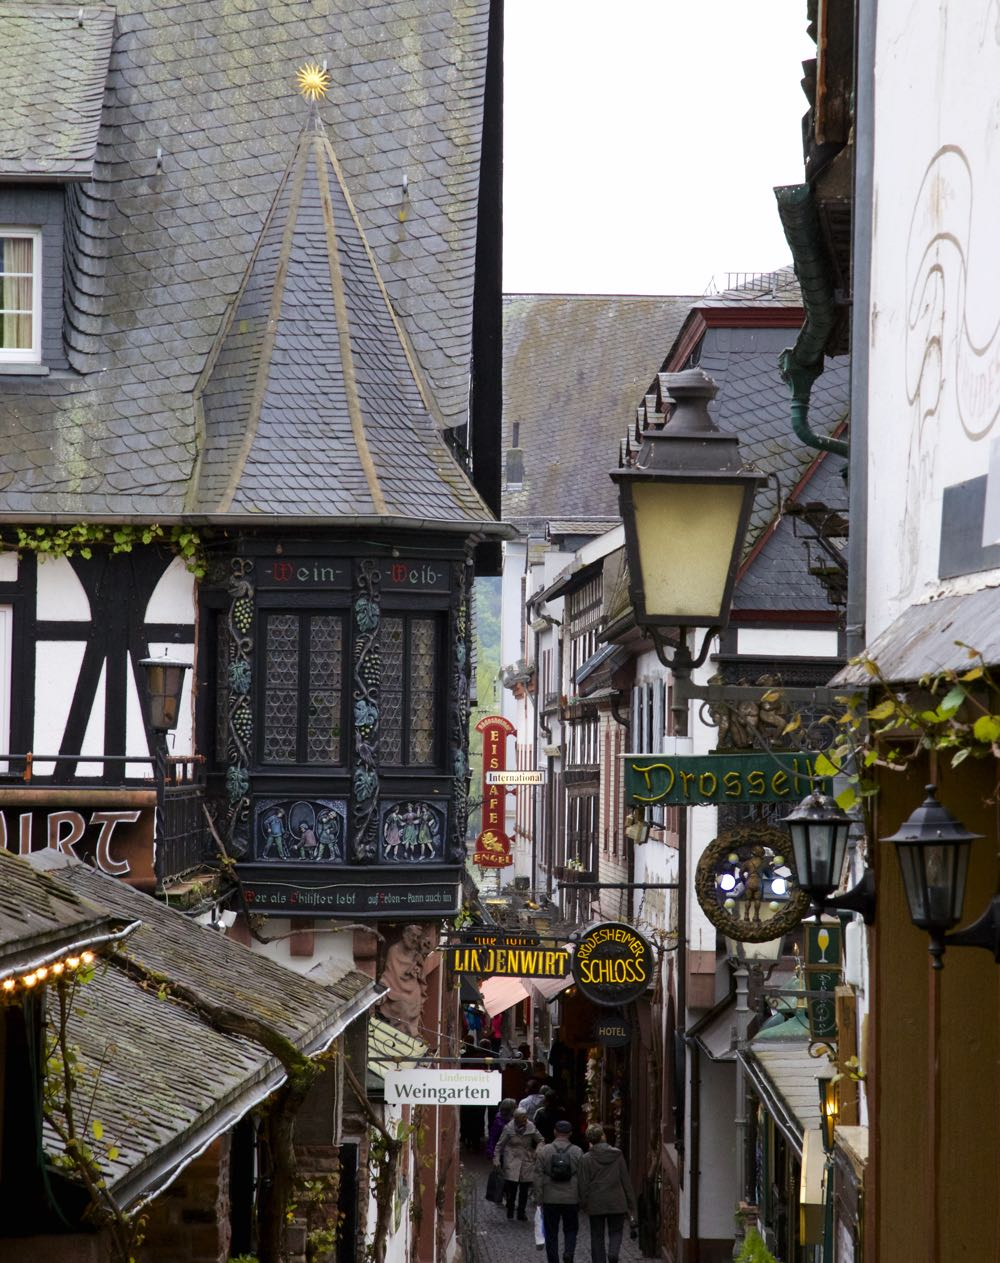 A narrow street of shops in Rüdesheim.